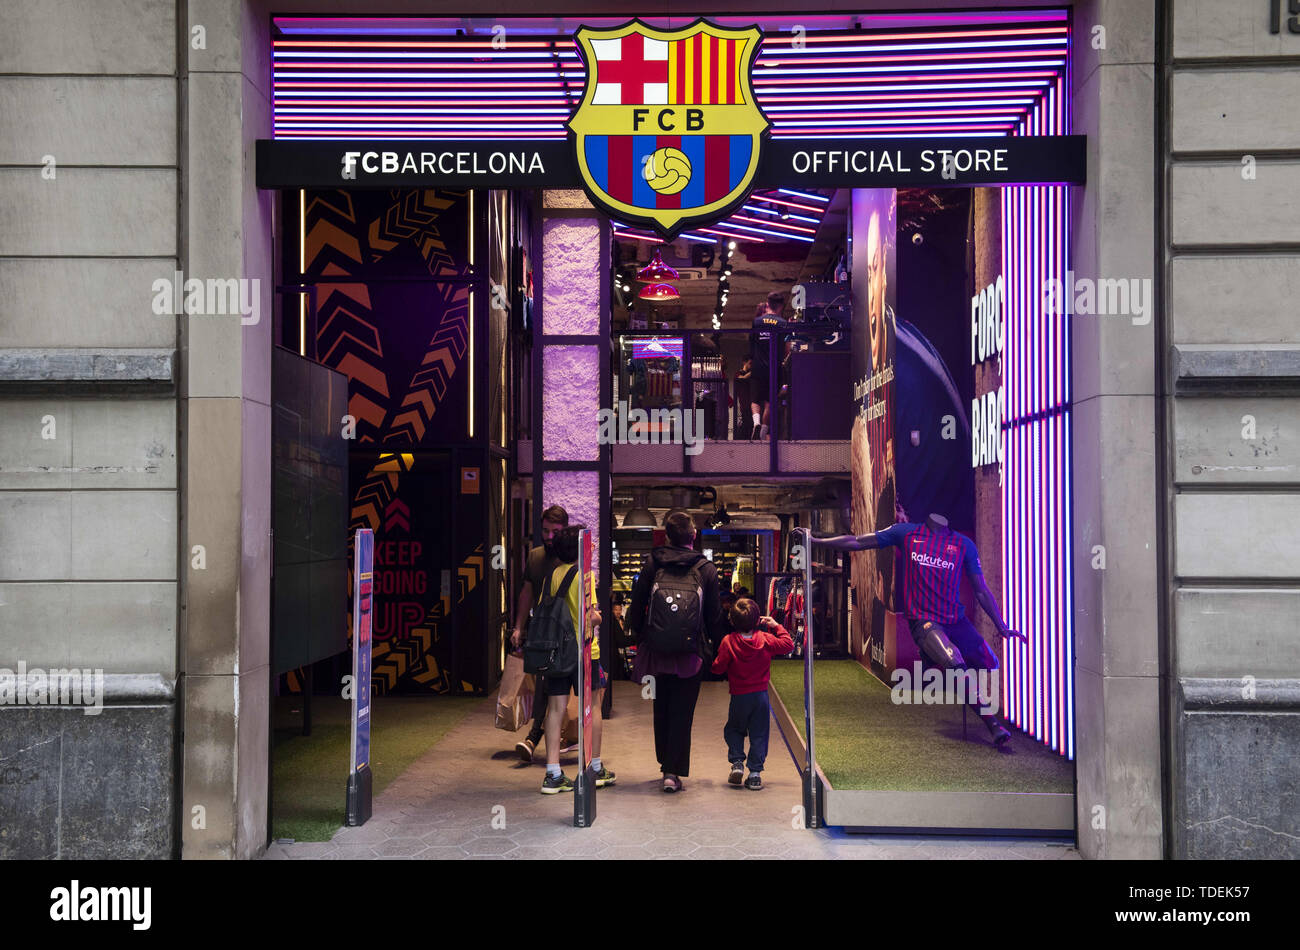 Barcelona, Spain. 29th May, 2019. Customers enter at the Spanish professional football team the Futbol Club Barcelona store in Barcelona. Credit: Budrul Chukrut/SOPA Images/ZUMA Wire/Alamy Live News - Stock Image